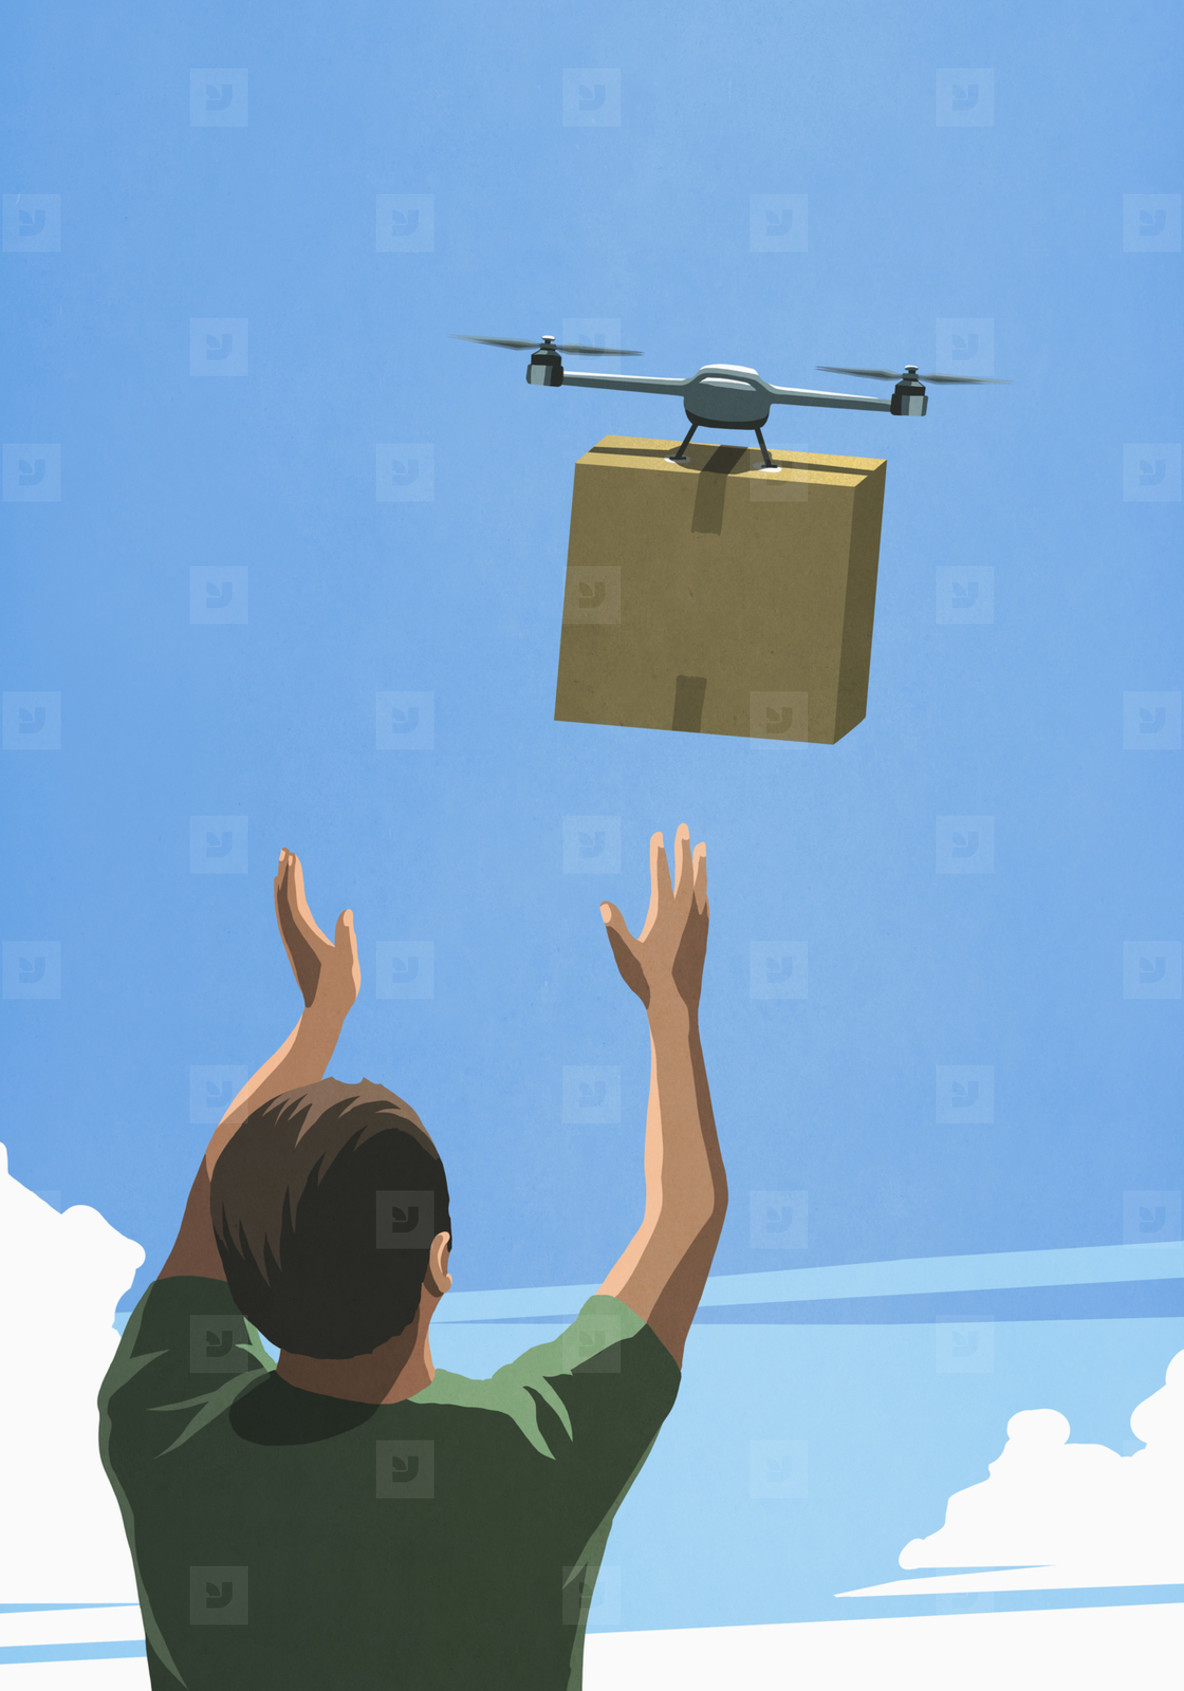 Man releasing drone with cardboard box delivery